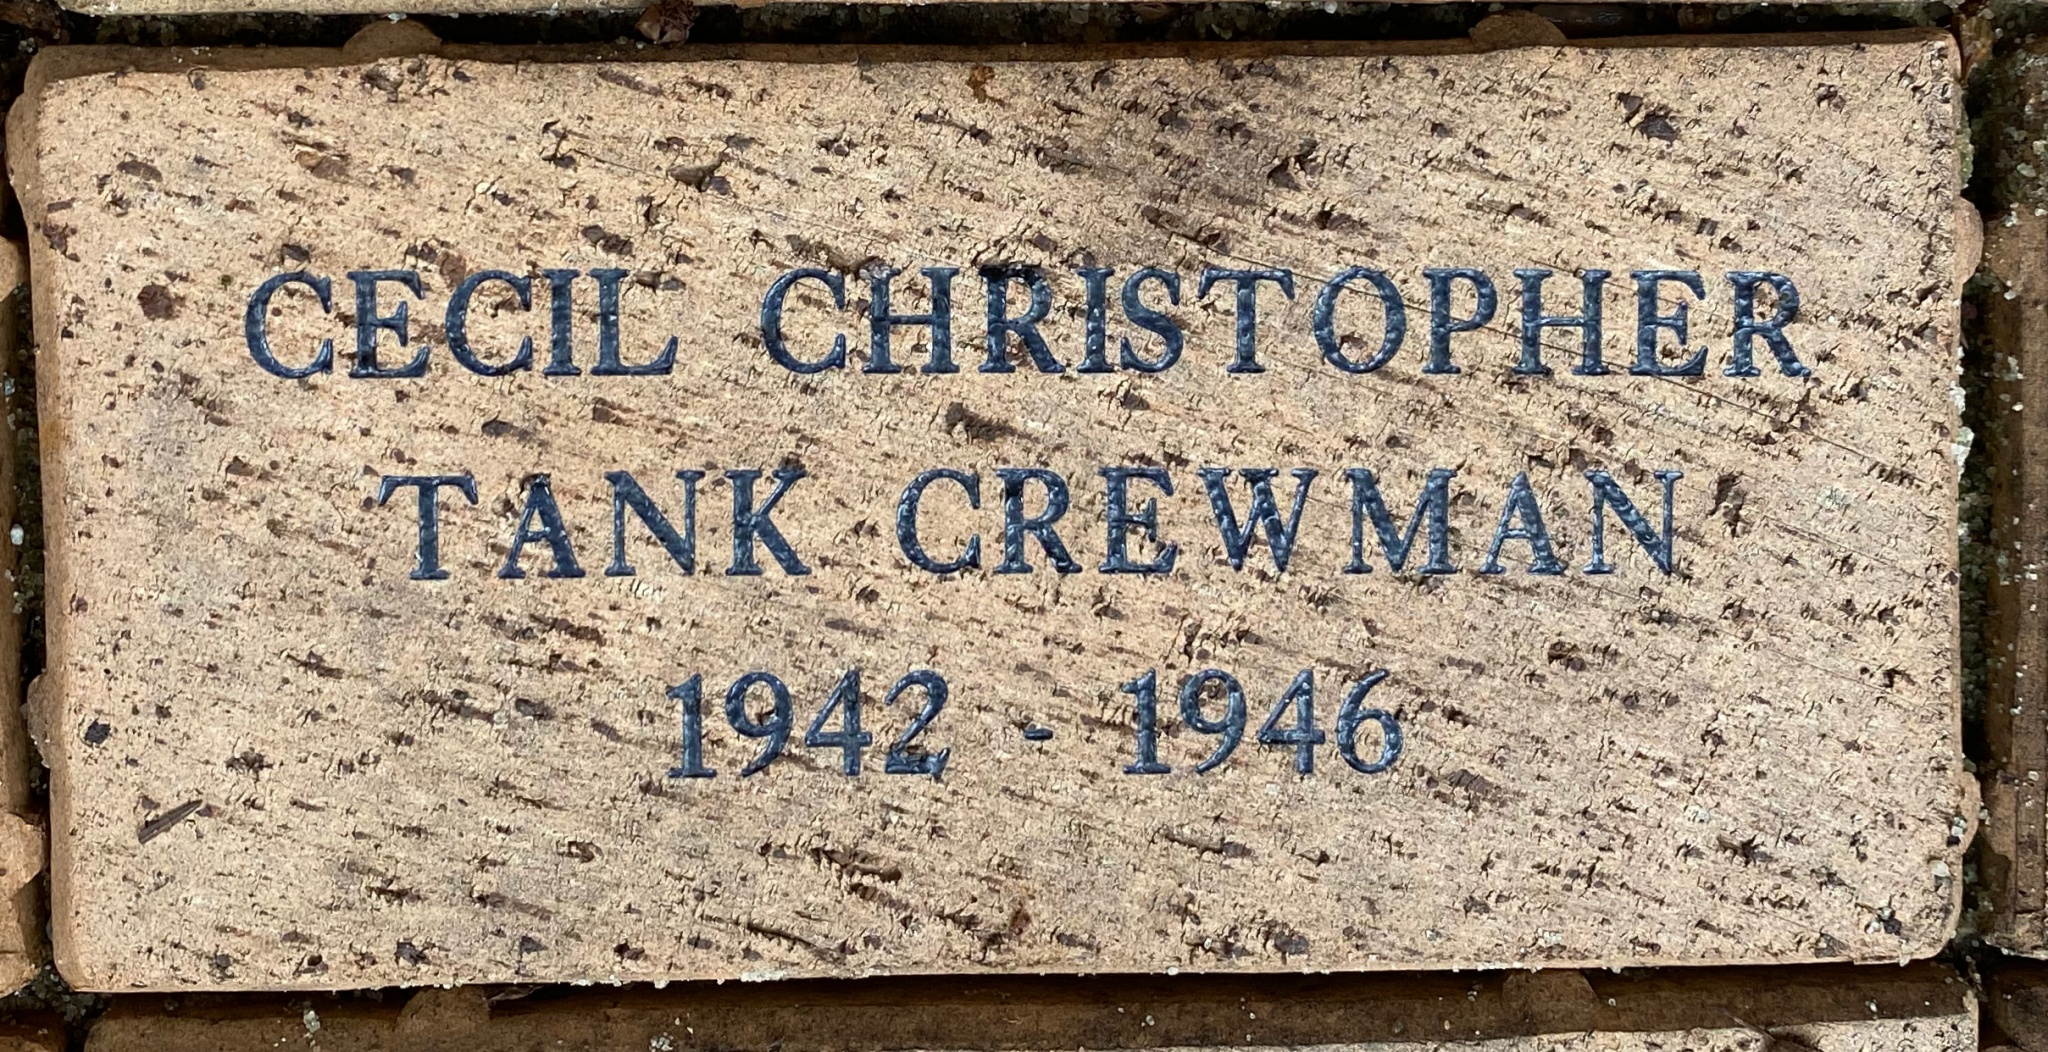 CECIL CHRISTOPHER TANK CREWMAN 1942 – 1946